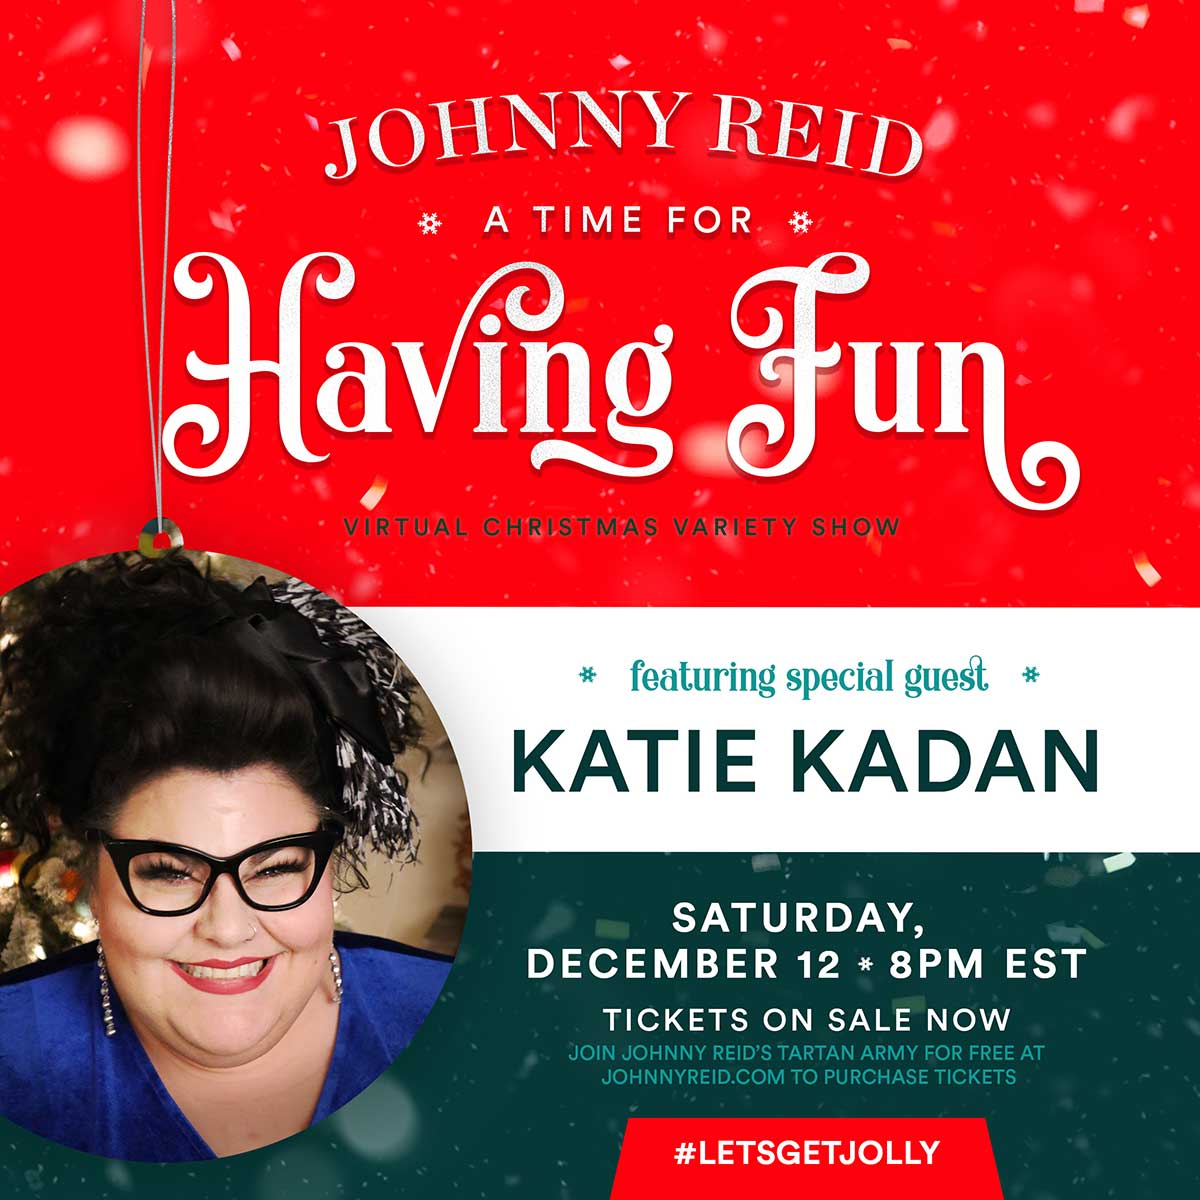 NBC The Voice Finalist Katie Kadan Announced as Special Guest on A Time For Having Fun Virtual Christmas Variety Show